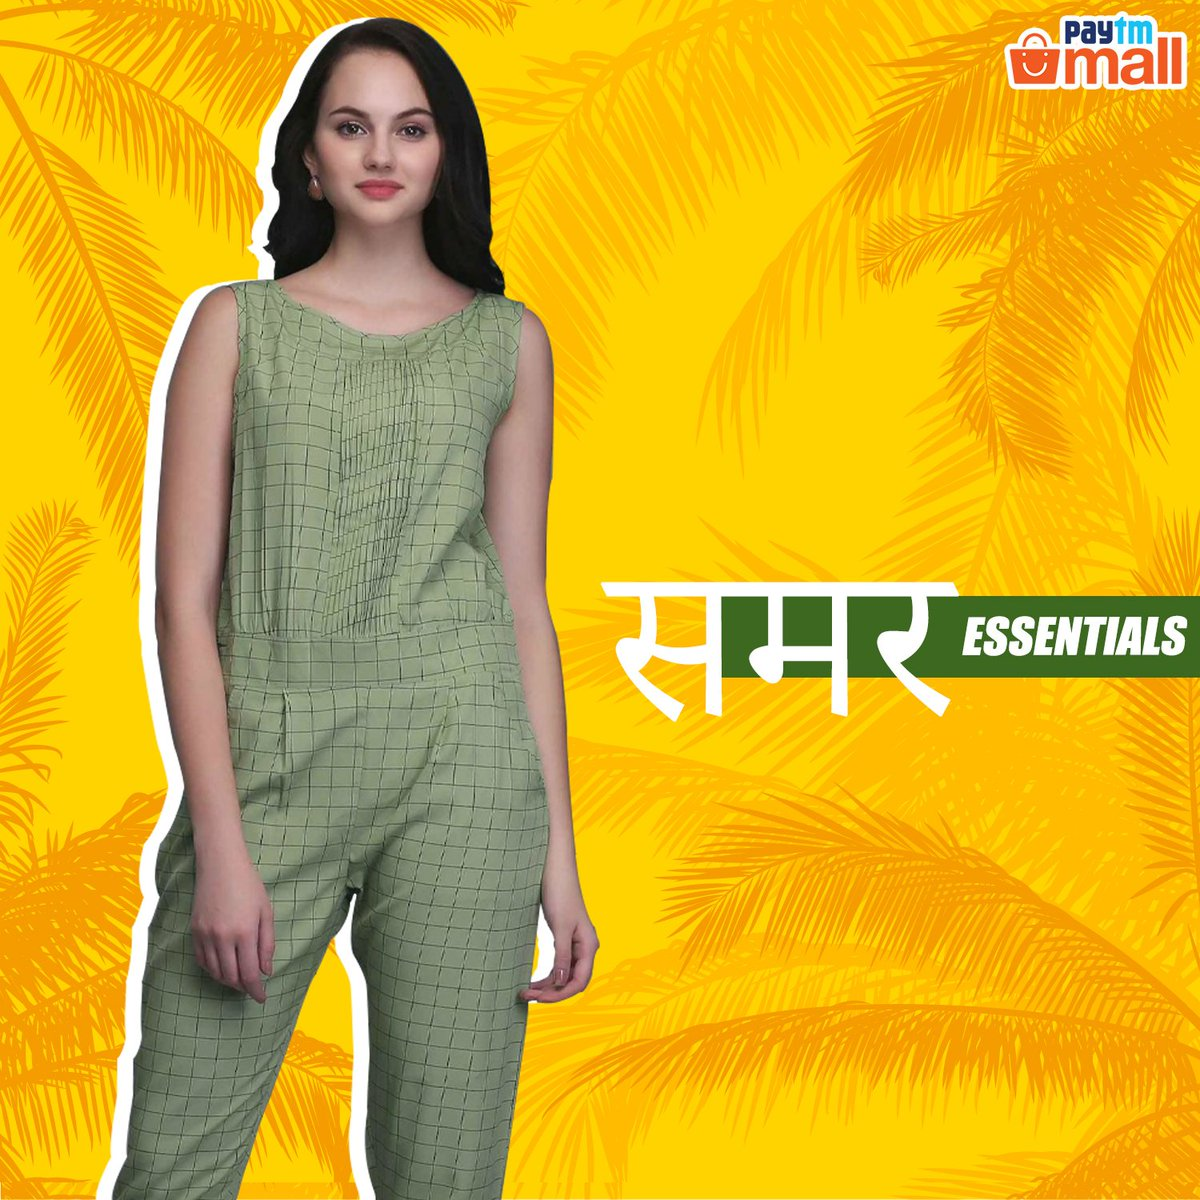 86b7d1881941 Get the look and be the summer stunner of the season. Shop the outfit now  at Paytm Mall. #Women #Jumpsuit #fashion http://pytm.ml/wjst  pic.twitter.com/ ...